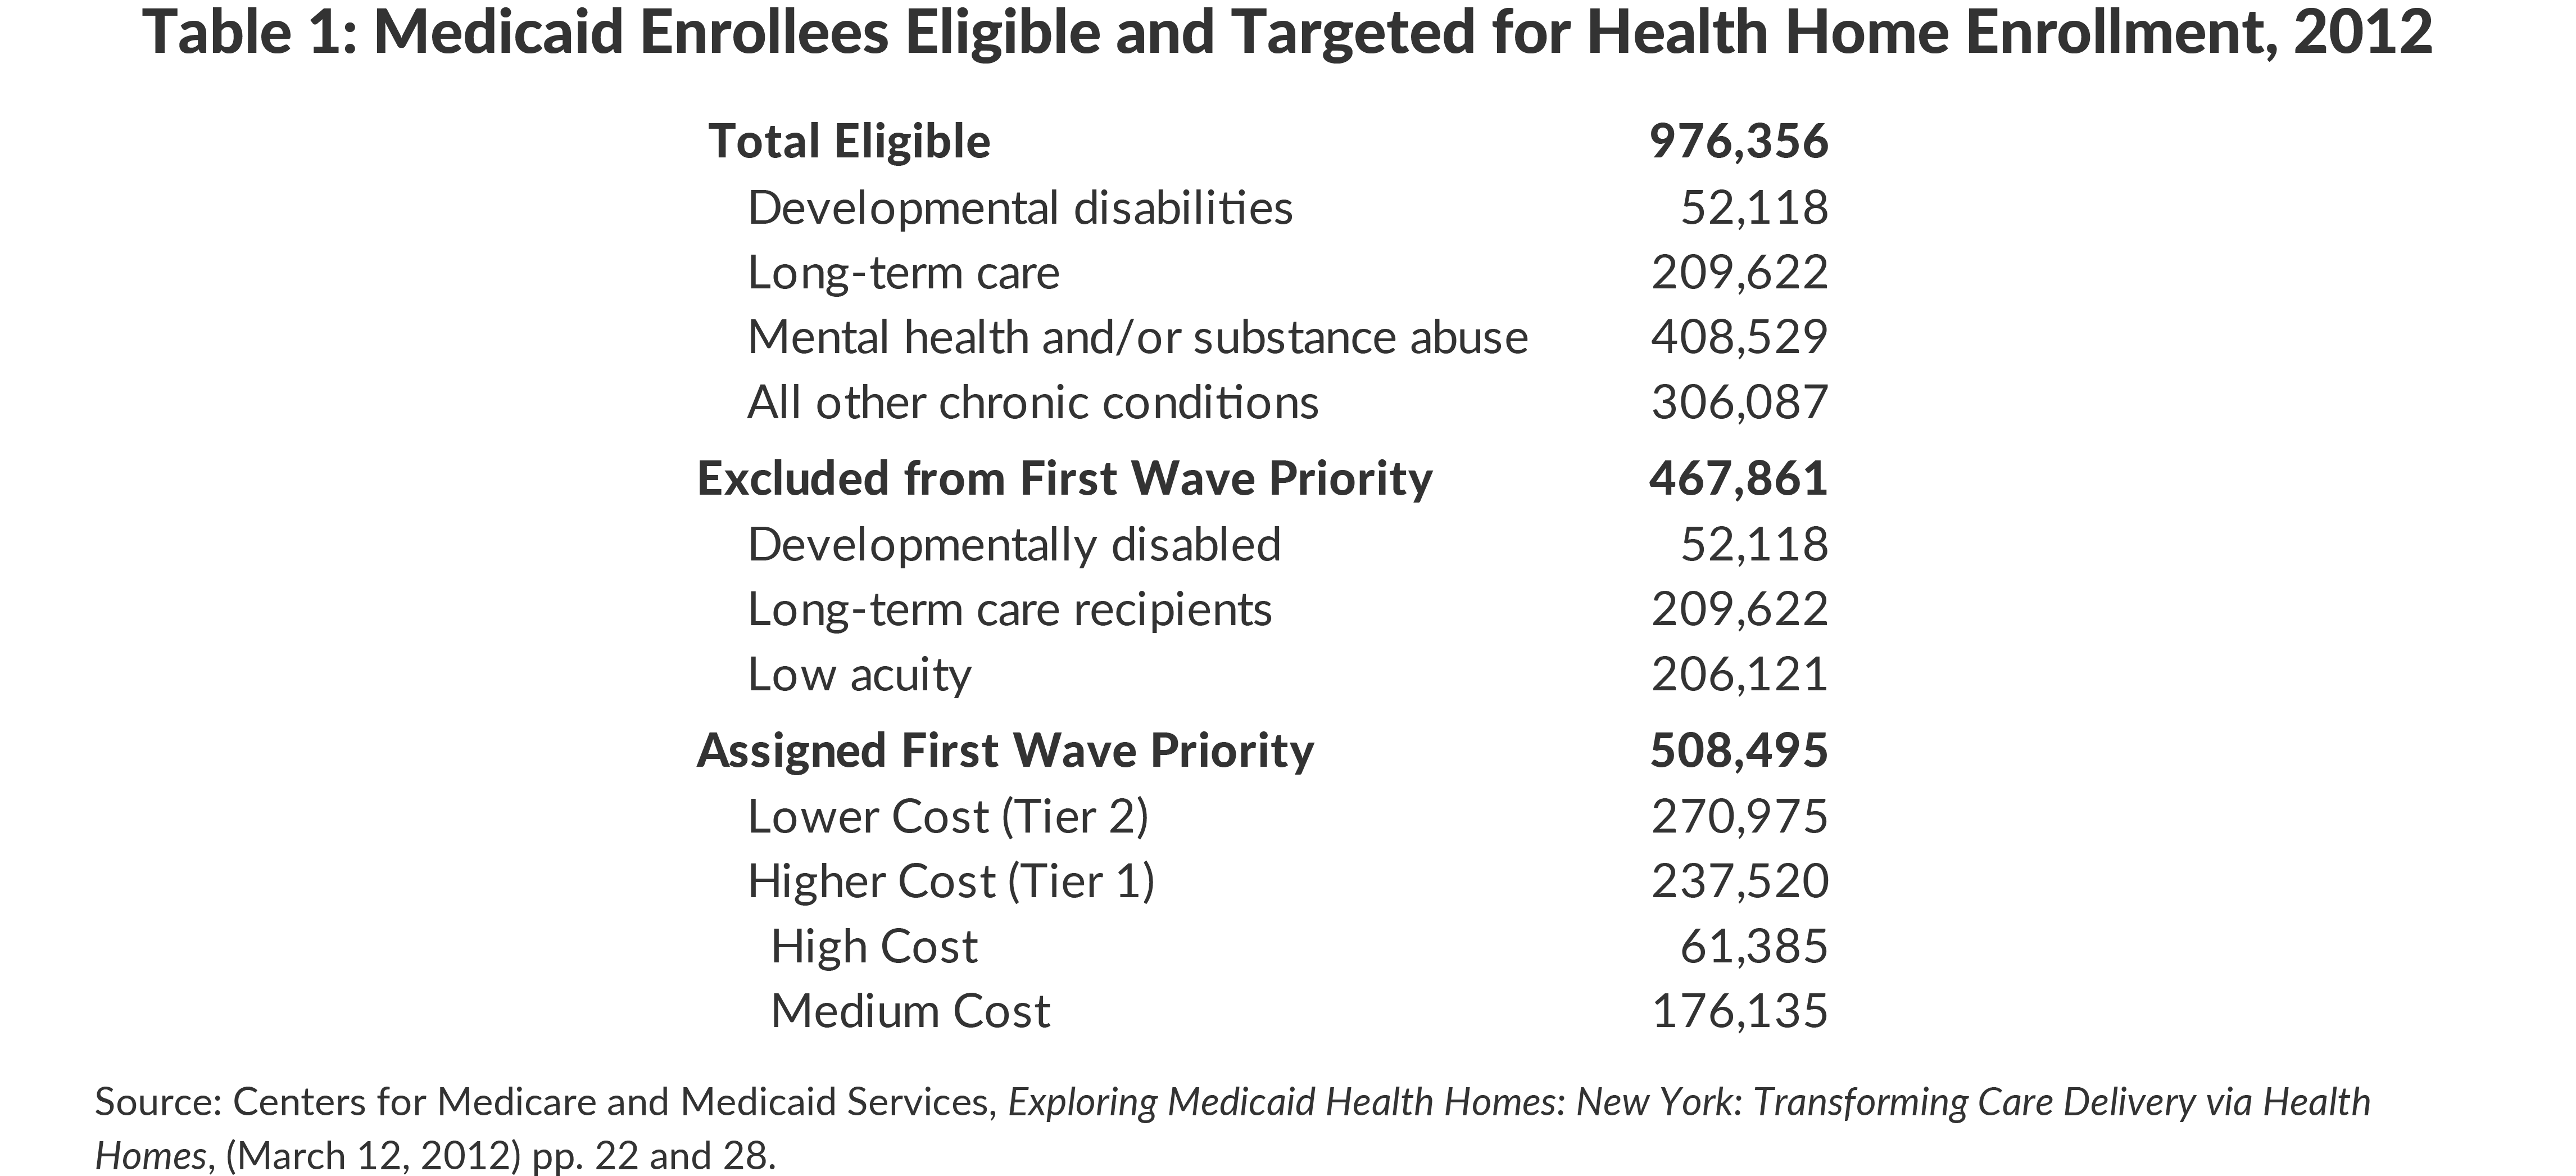 Table 1: Medicaid Enrollees Eligible and Targeted for Health Home Enrollment, 2012